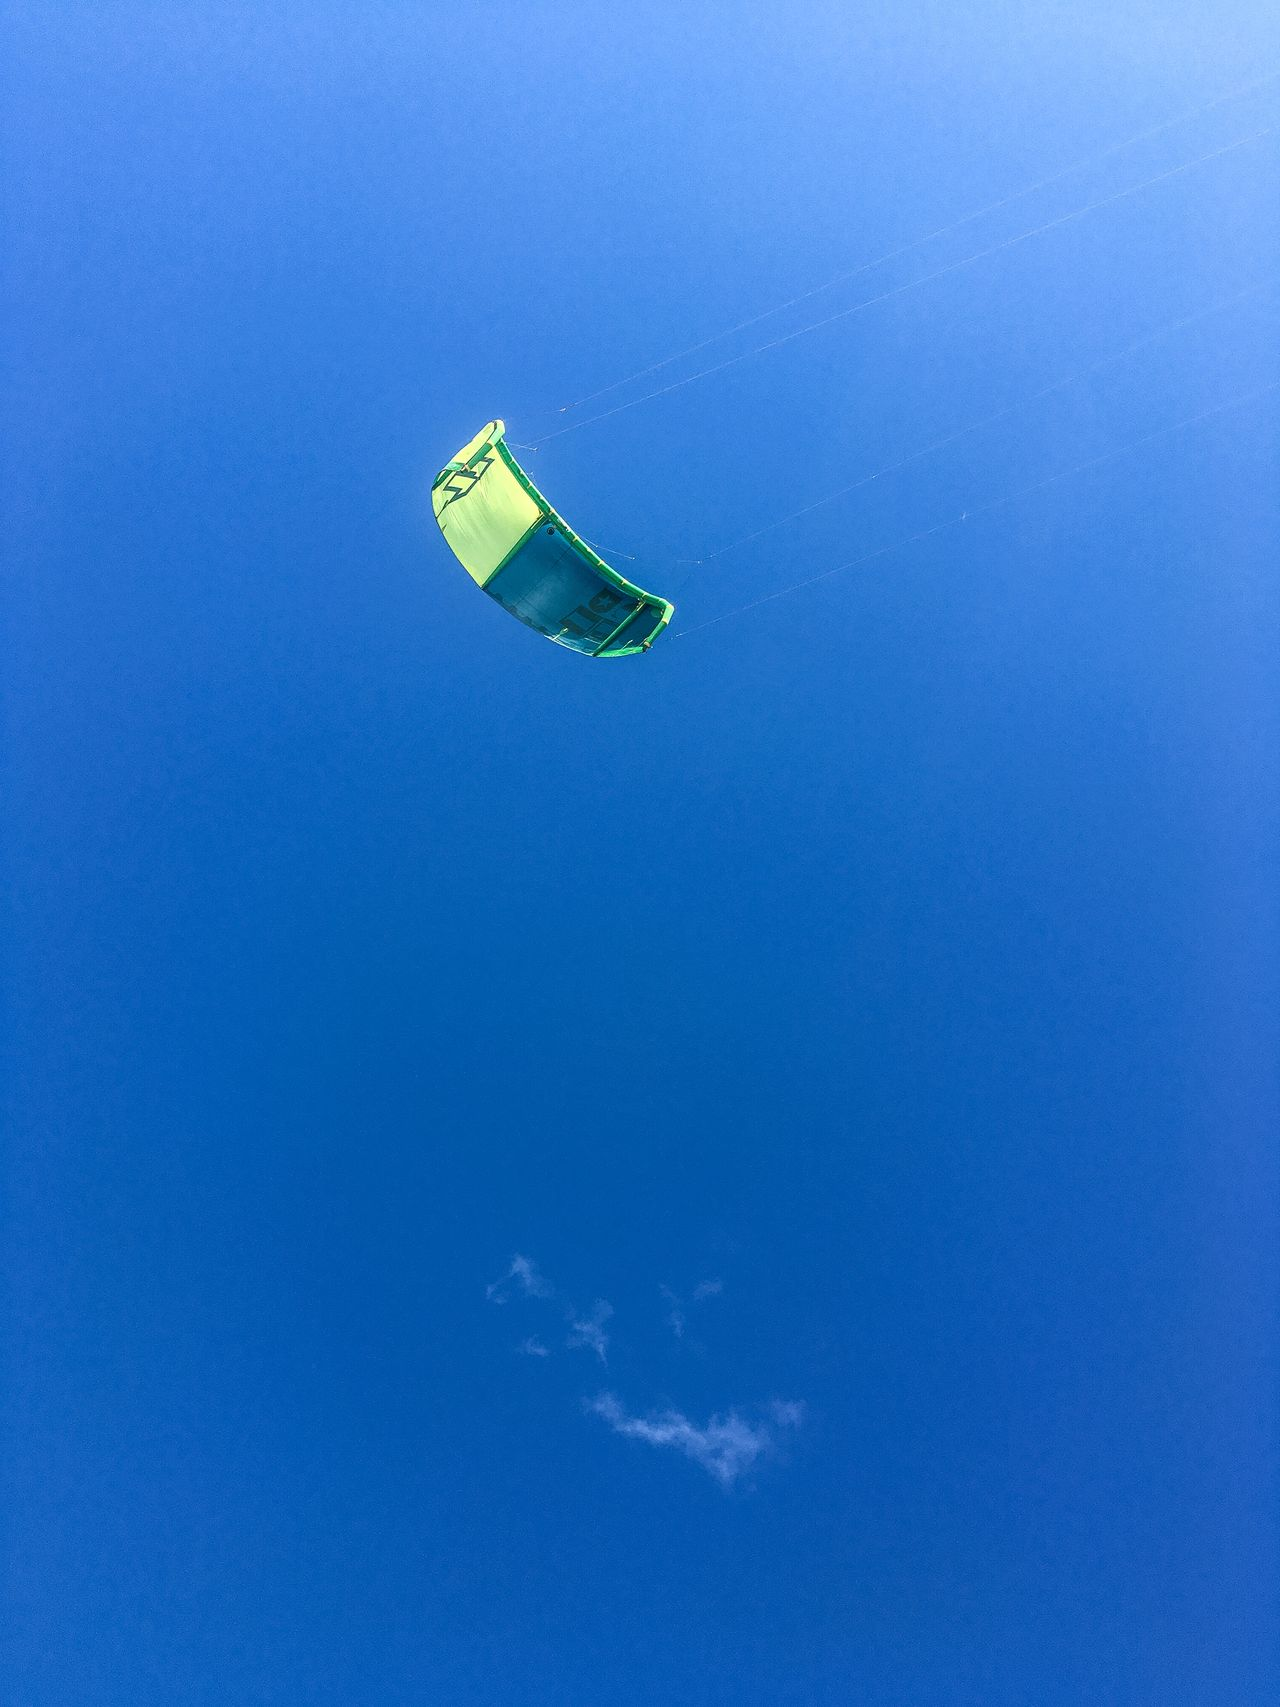 Adventure Beauty In Nature Blue Day Extreme Sports Flying Holidays Hot Air Balloon Kite Kitesurfing Leisure Activity Low Angle View Nature One Person Outdoors Sky Summer Transportation Vacations Water Activities Wing